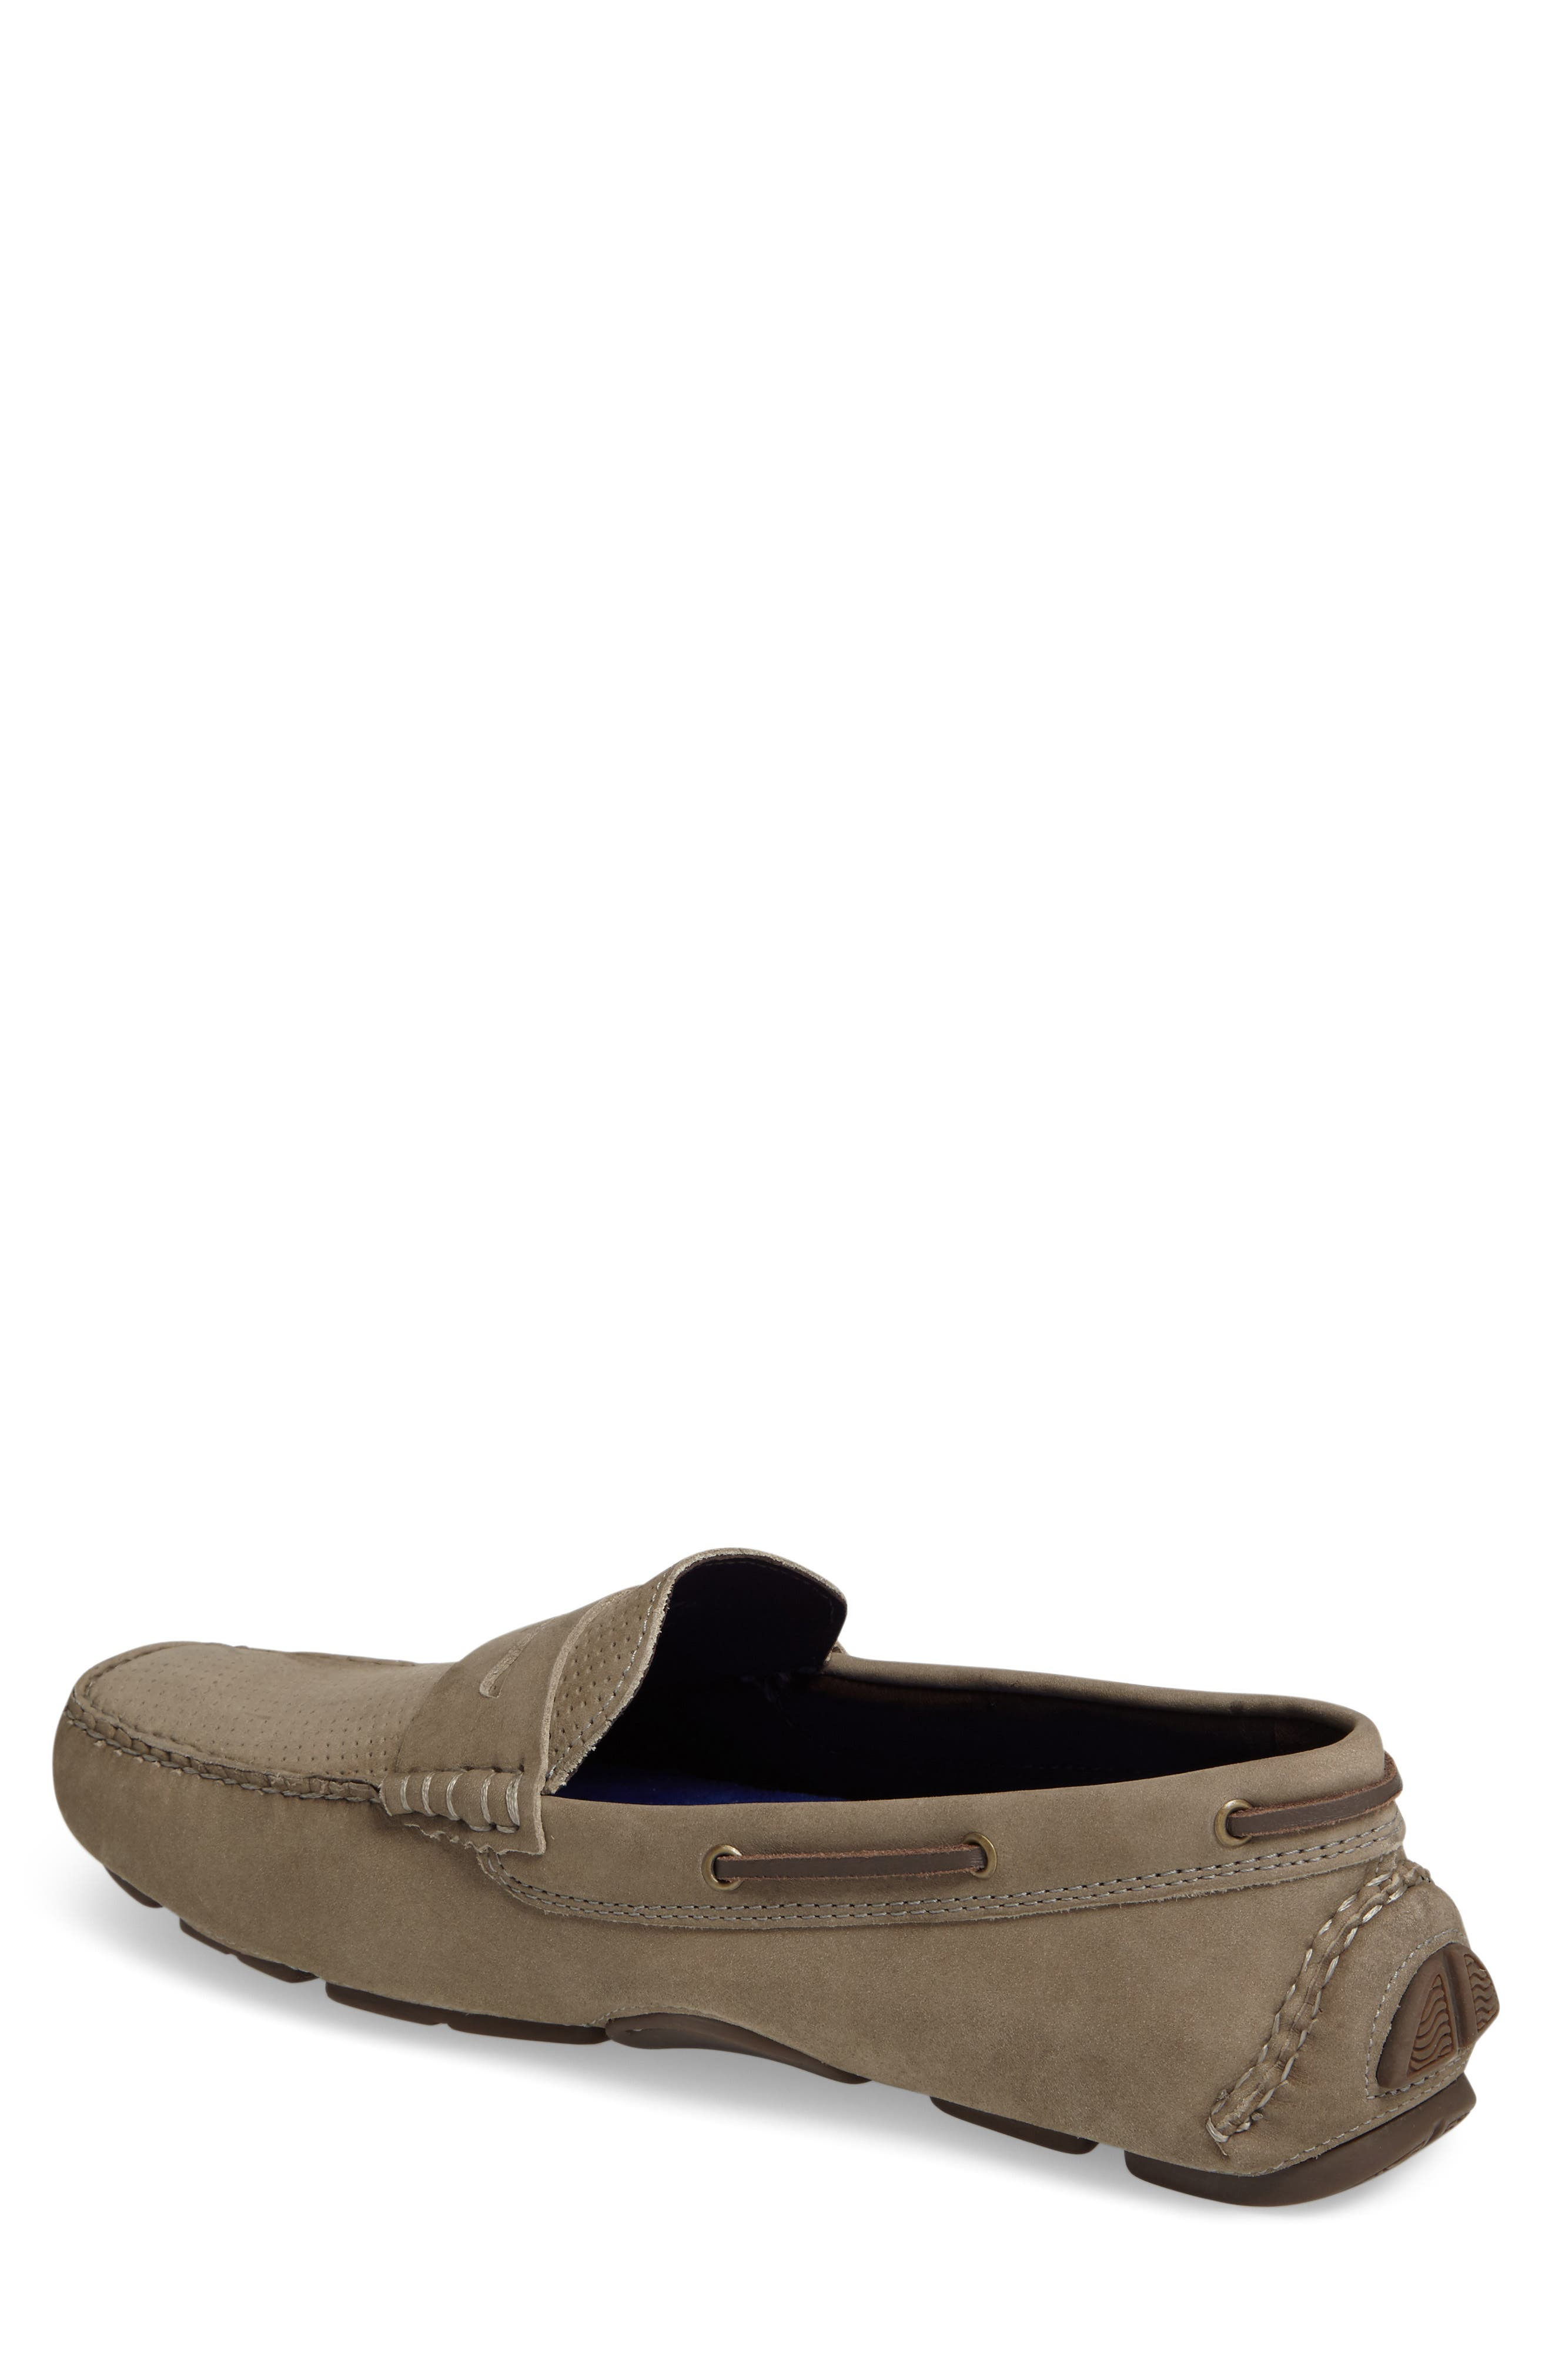 Perforated Driving Loafer,                             Alternate thumbnail 2, color,                             020